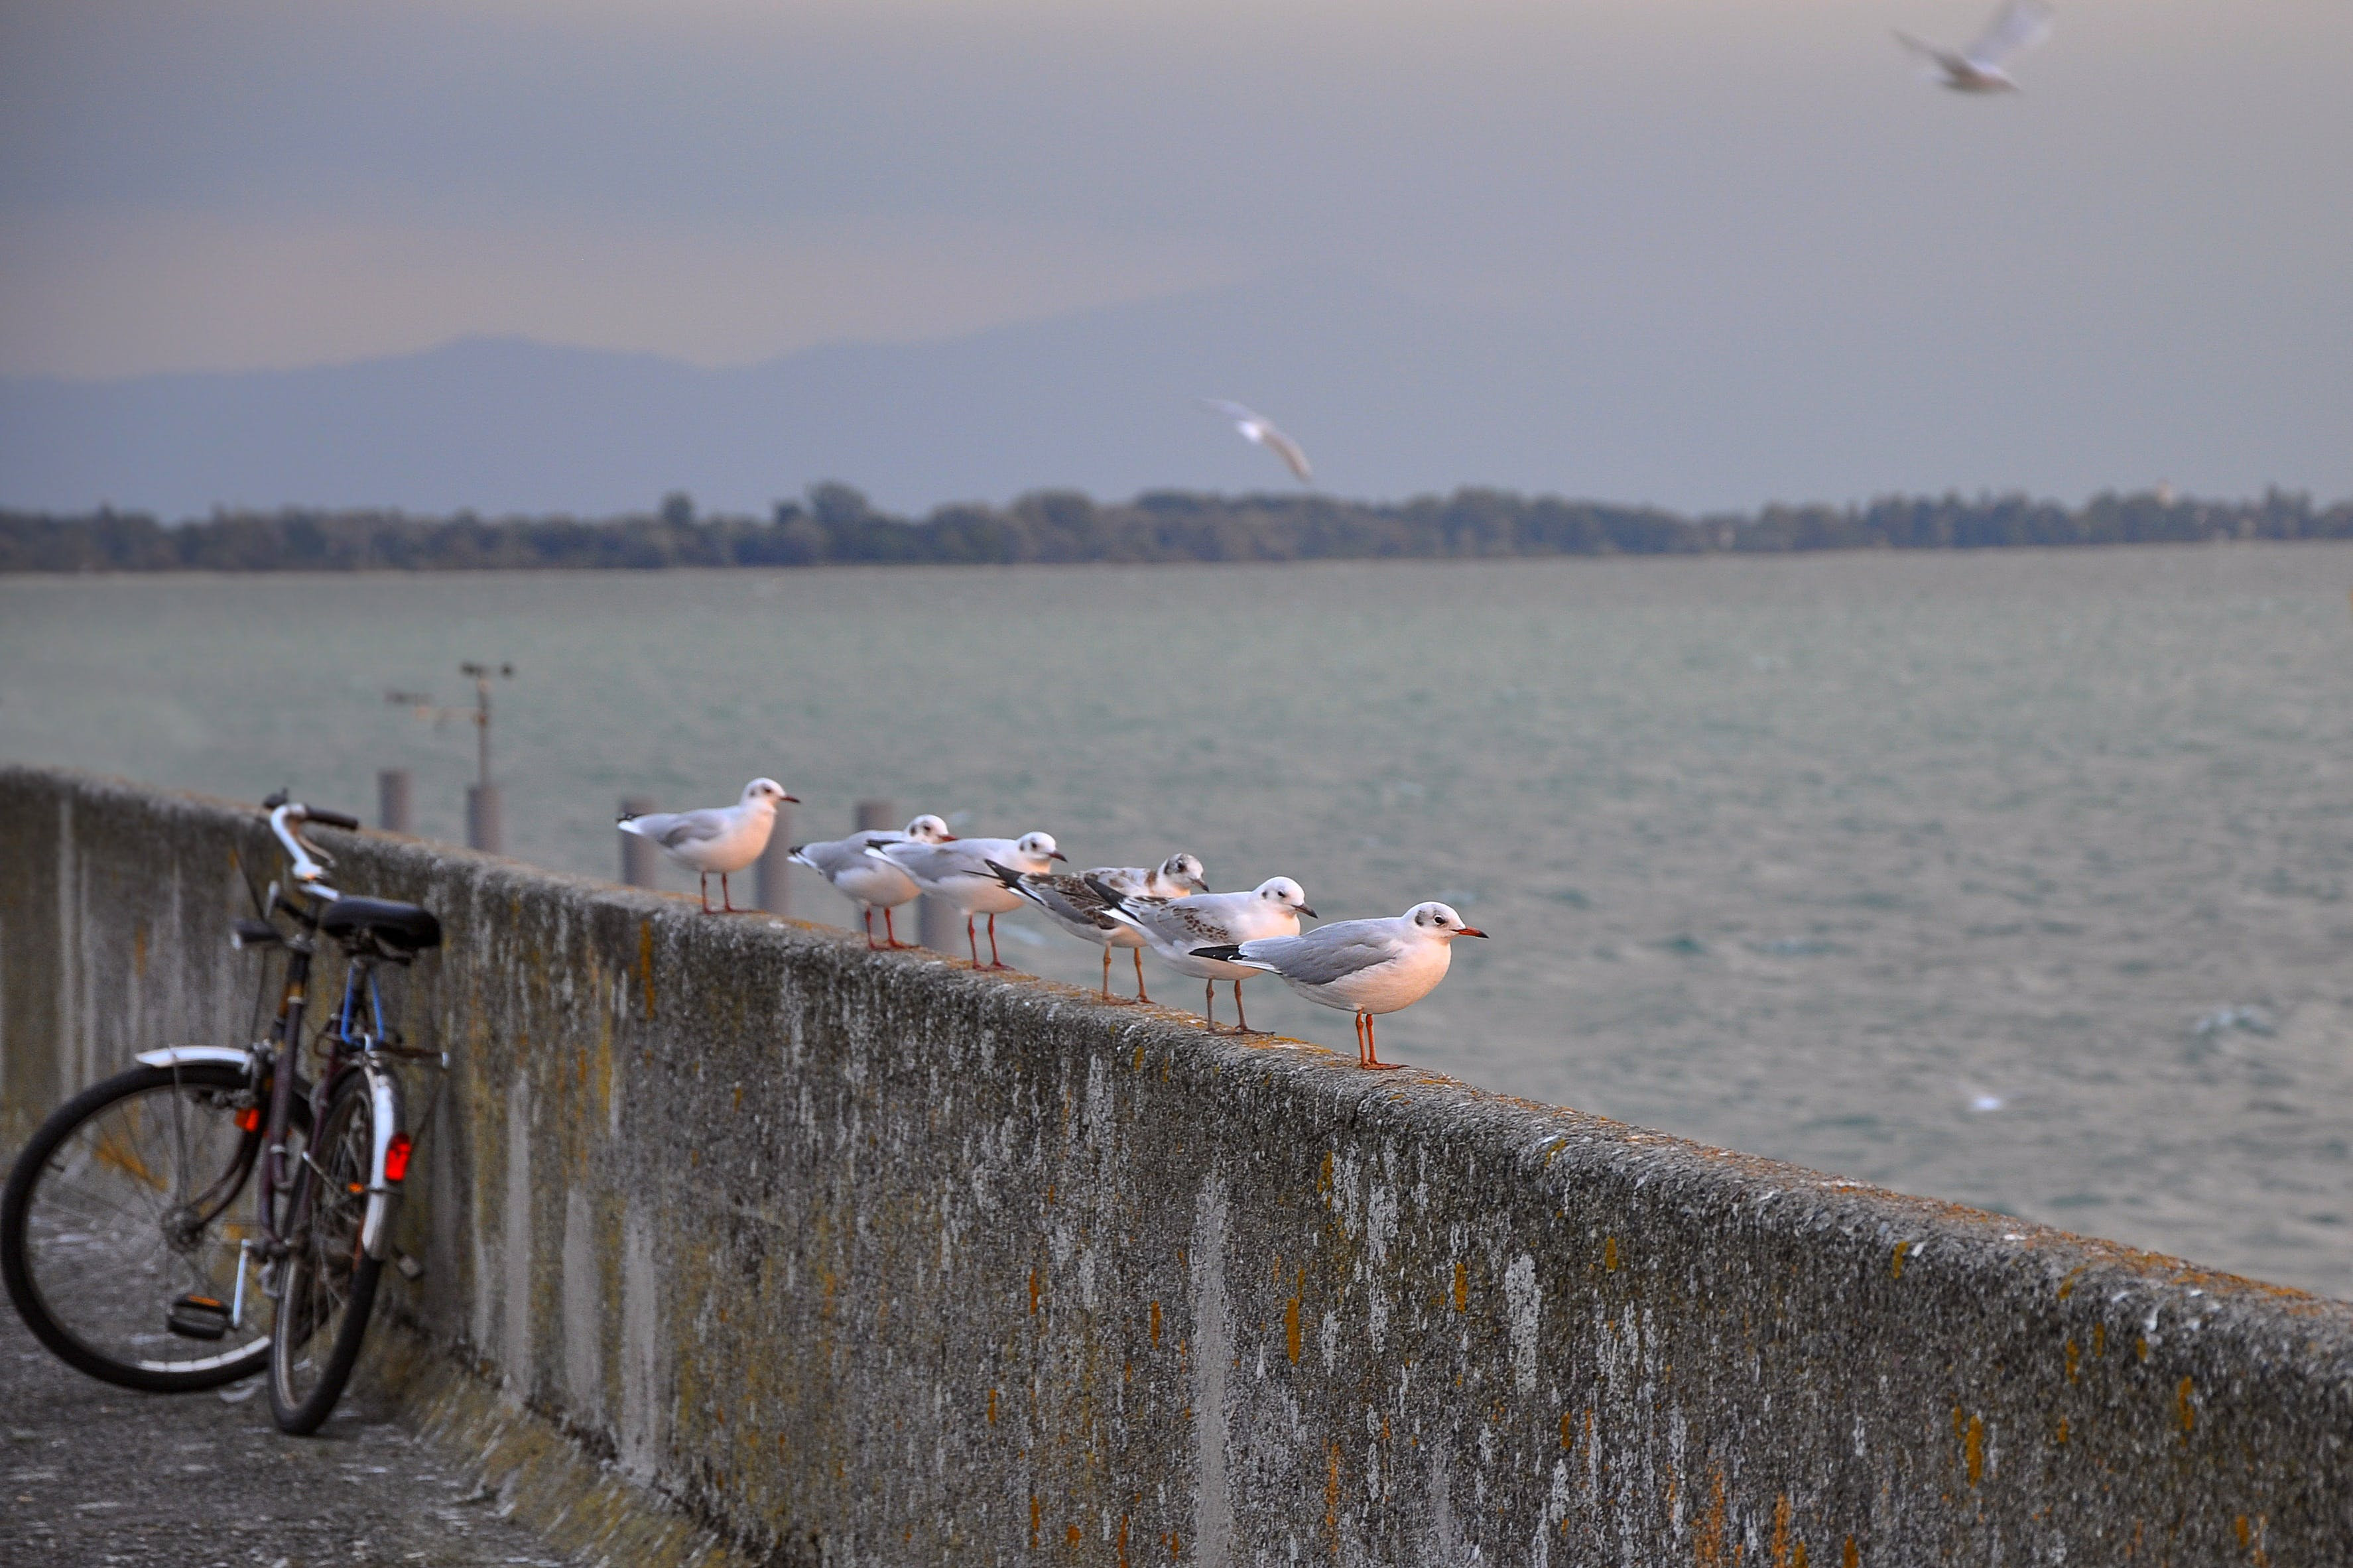 White and Grey Birds on Concrete Barrier Near Body of Water